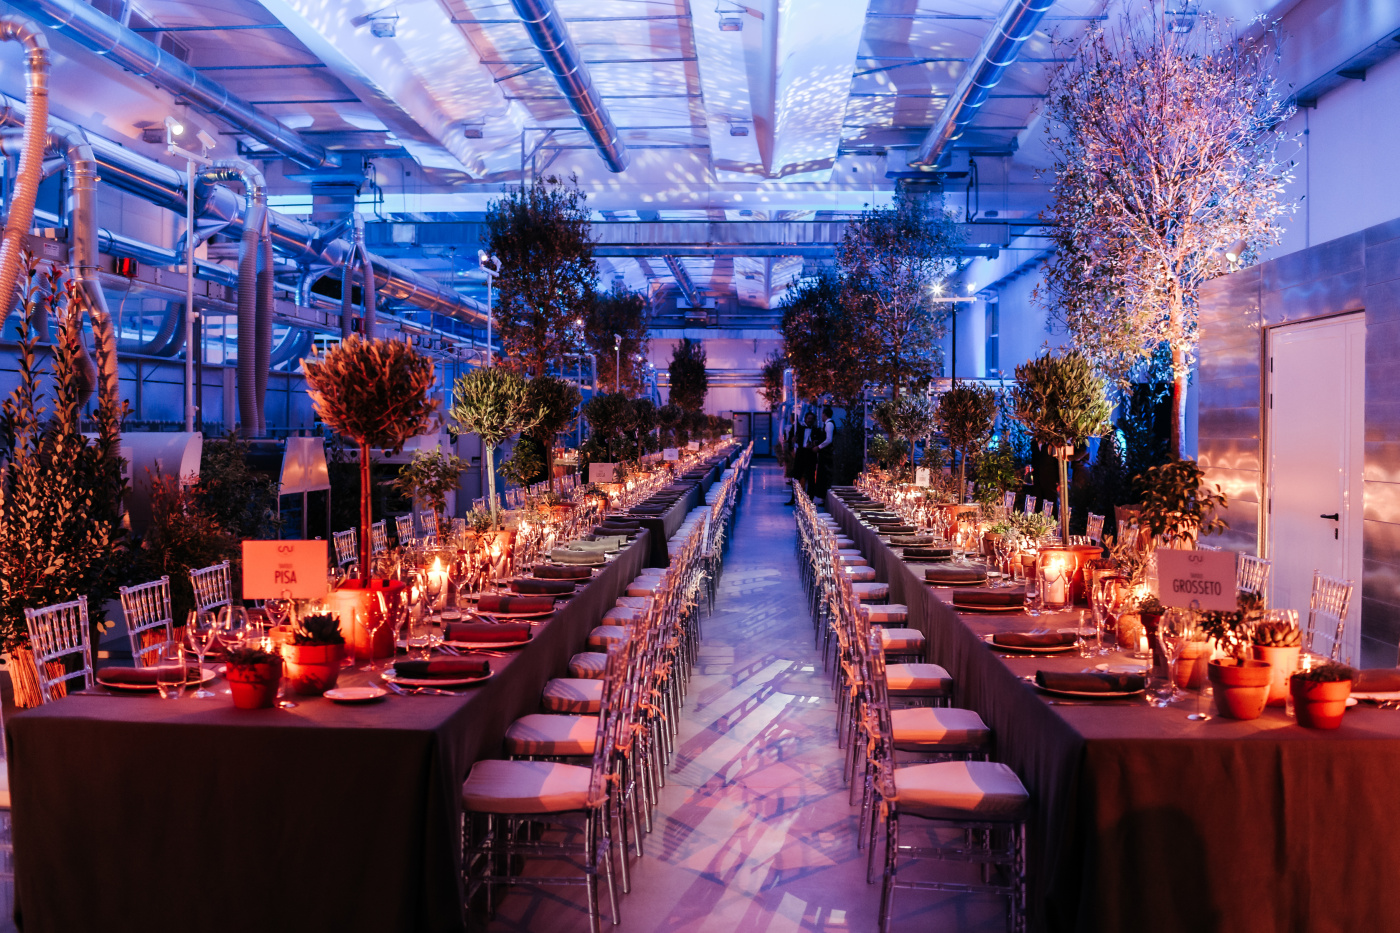 Two long rectangular tables for a corporate event dinner